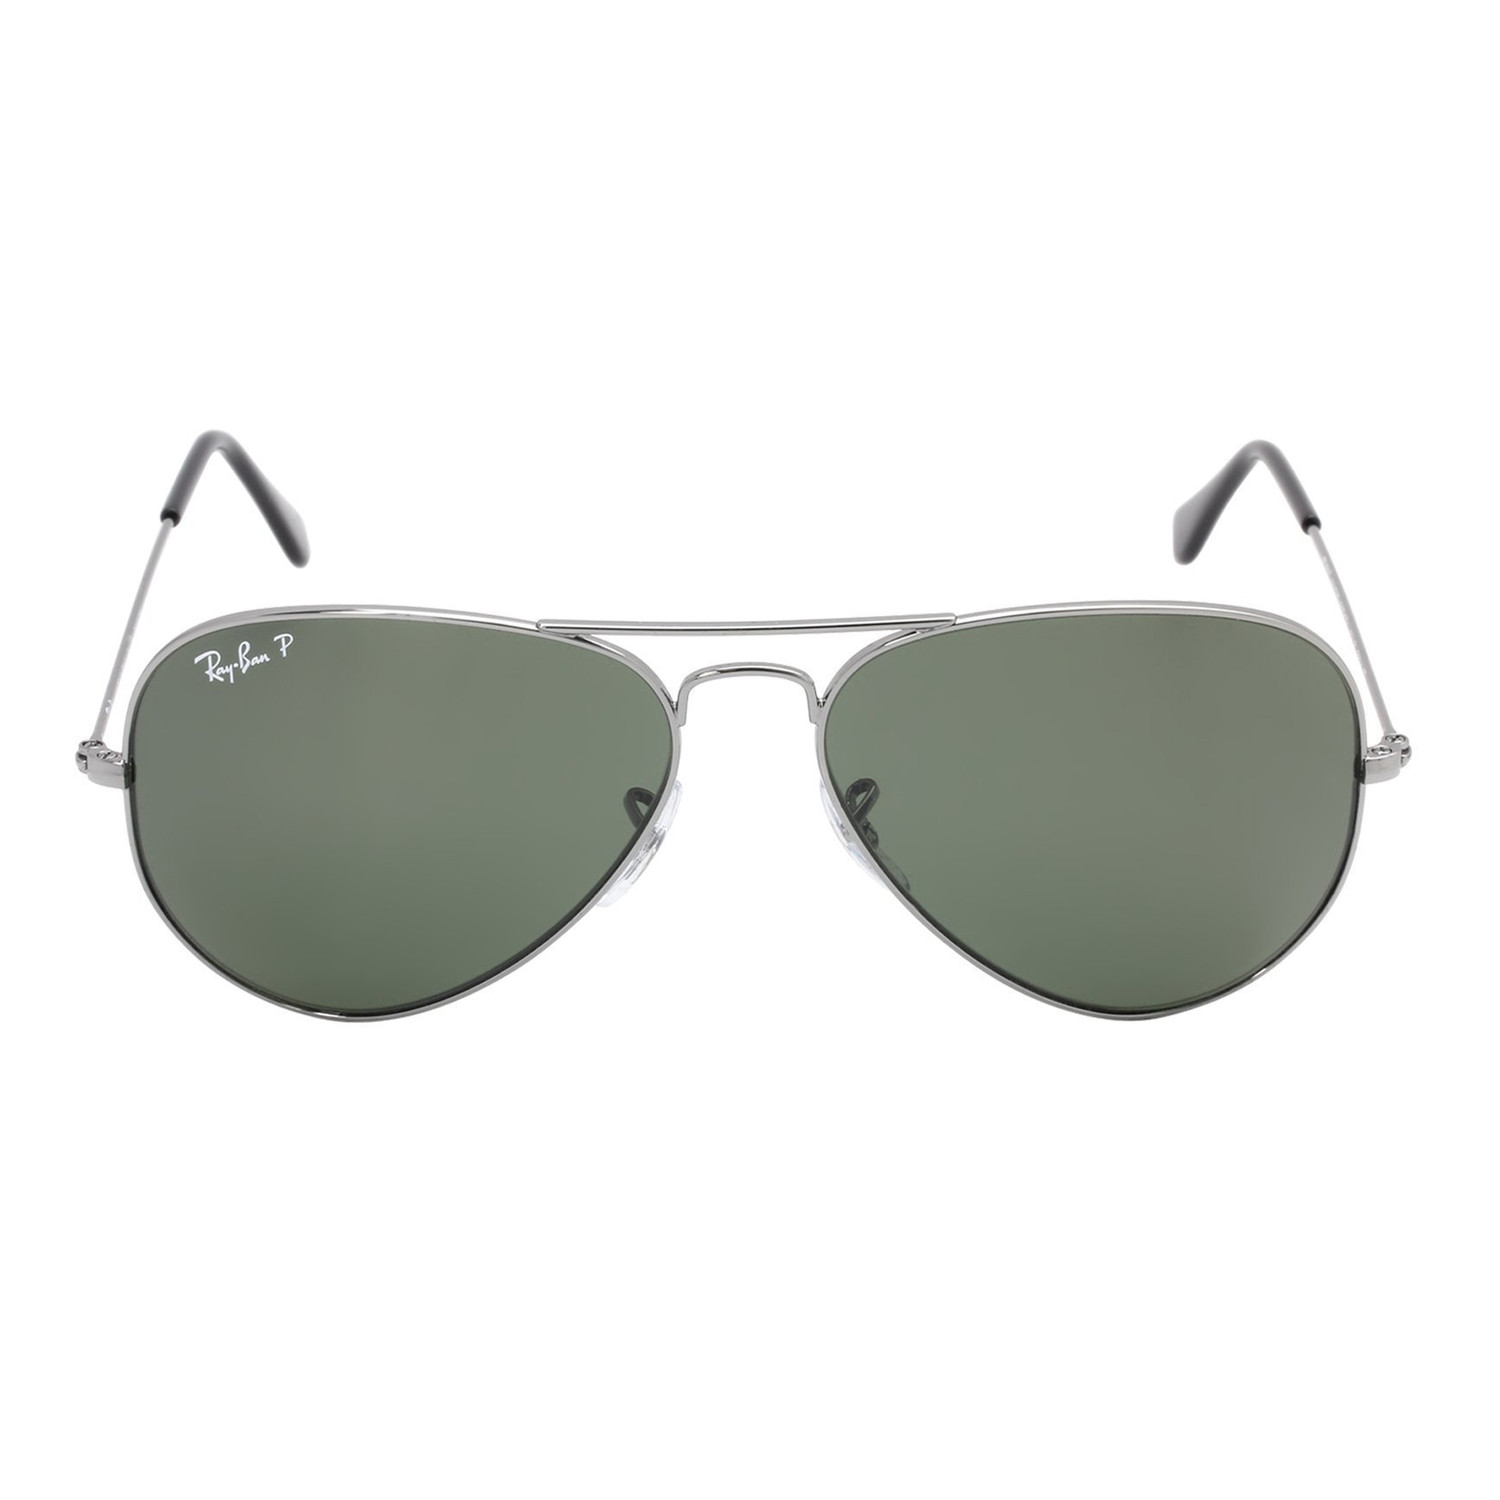 a999f3977f 64863b429fa639aa931ea3c1510aa9e4 medium · Large Metal Aviator Sunglasses ...